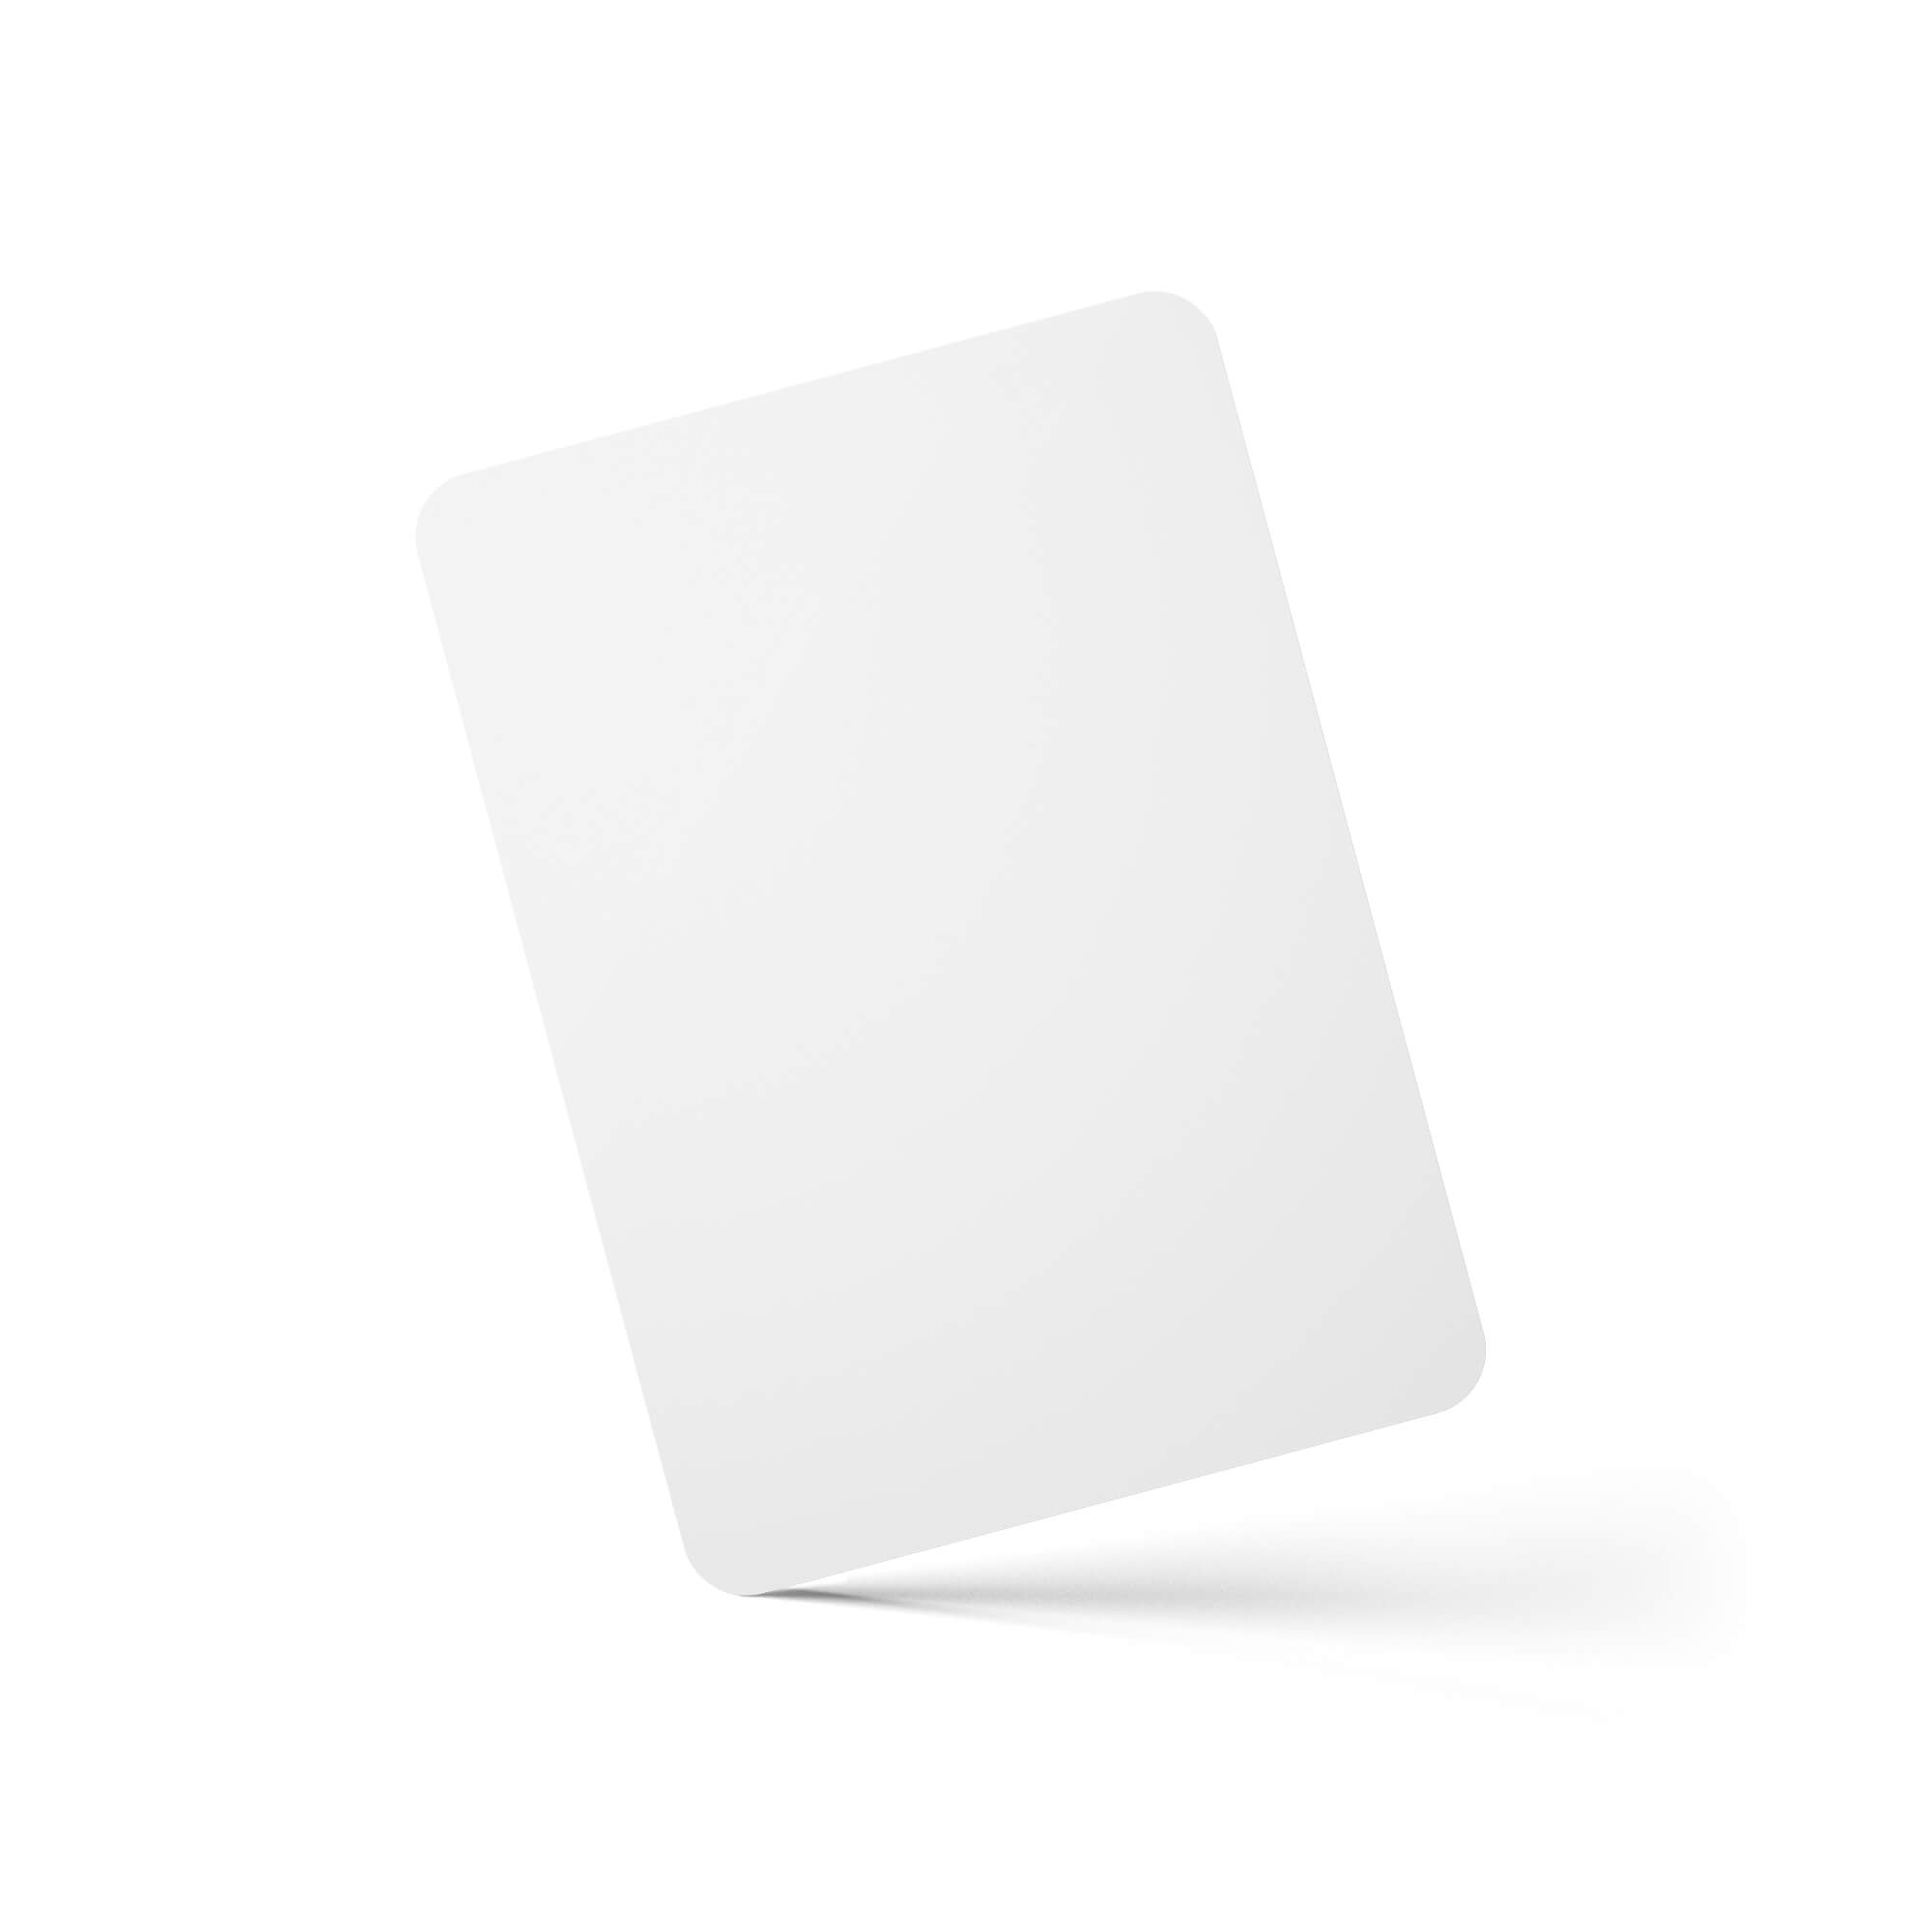 Blank Free Game Card Mockup PSD Template (1)